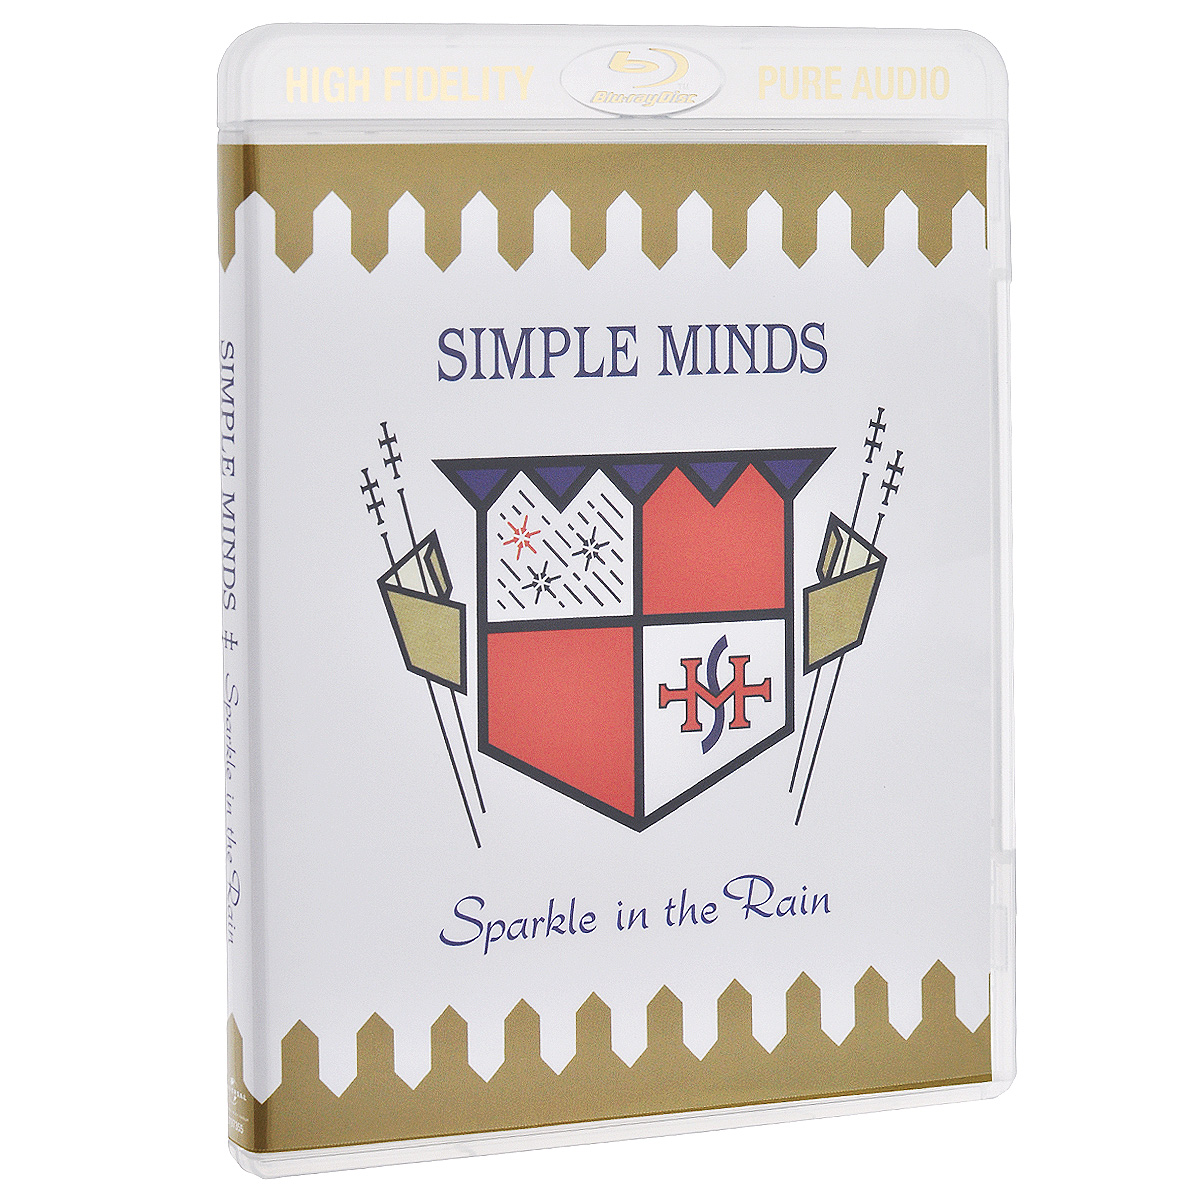 Simple Minds Simple Minds. Sparkle In The Rain (Blu-Ray Audio) simple minds simple minds once upon a time 5 cd dvd